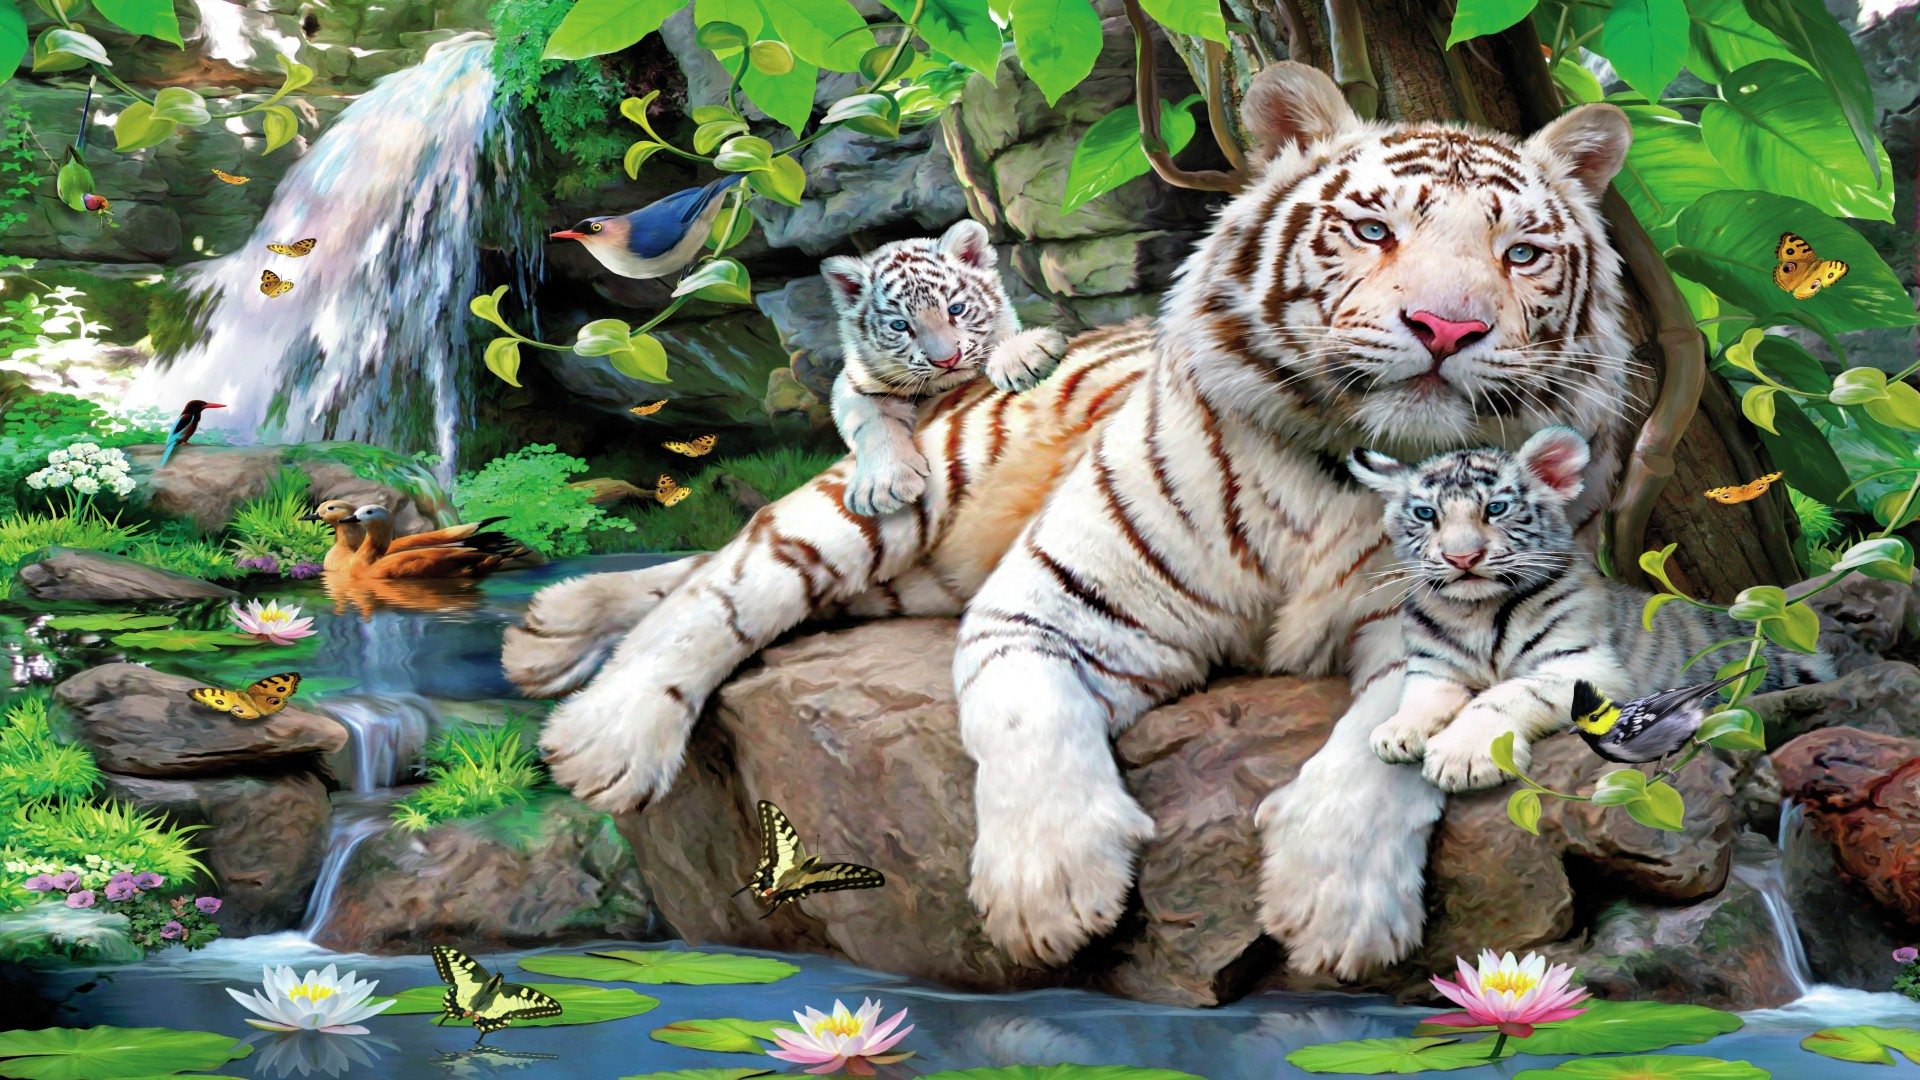 Cub HD Wallpapers Movie HD Wallpapers 1920x1080